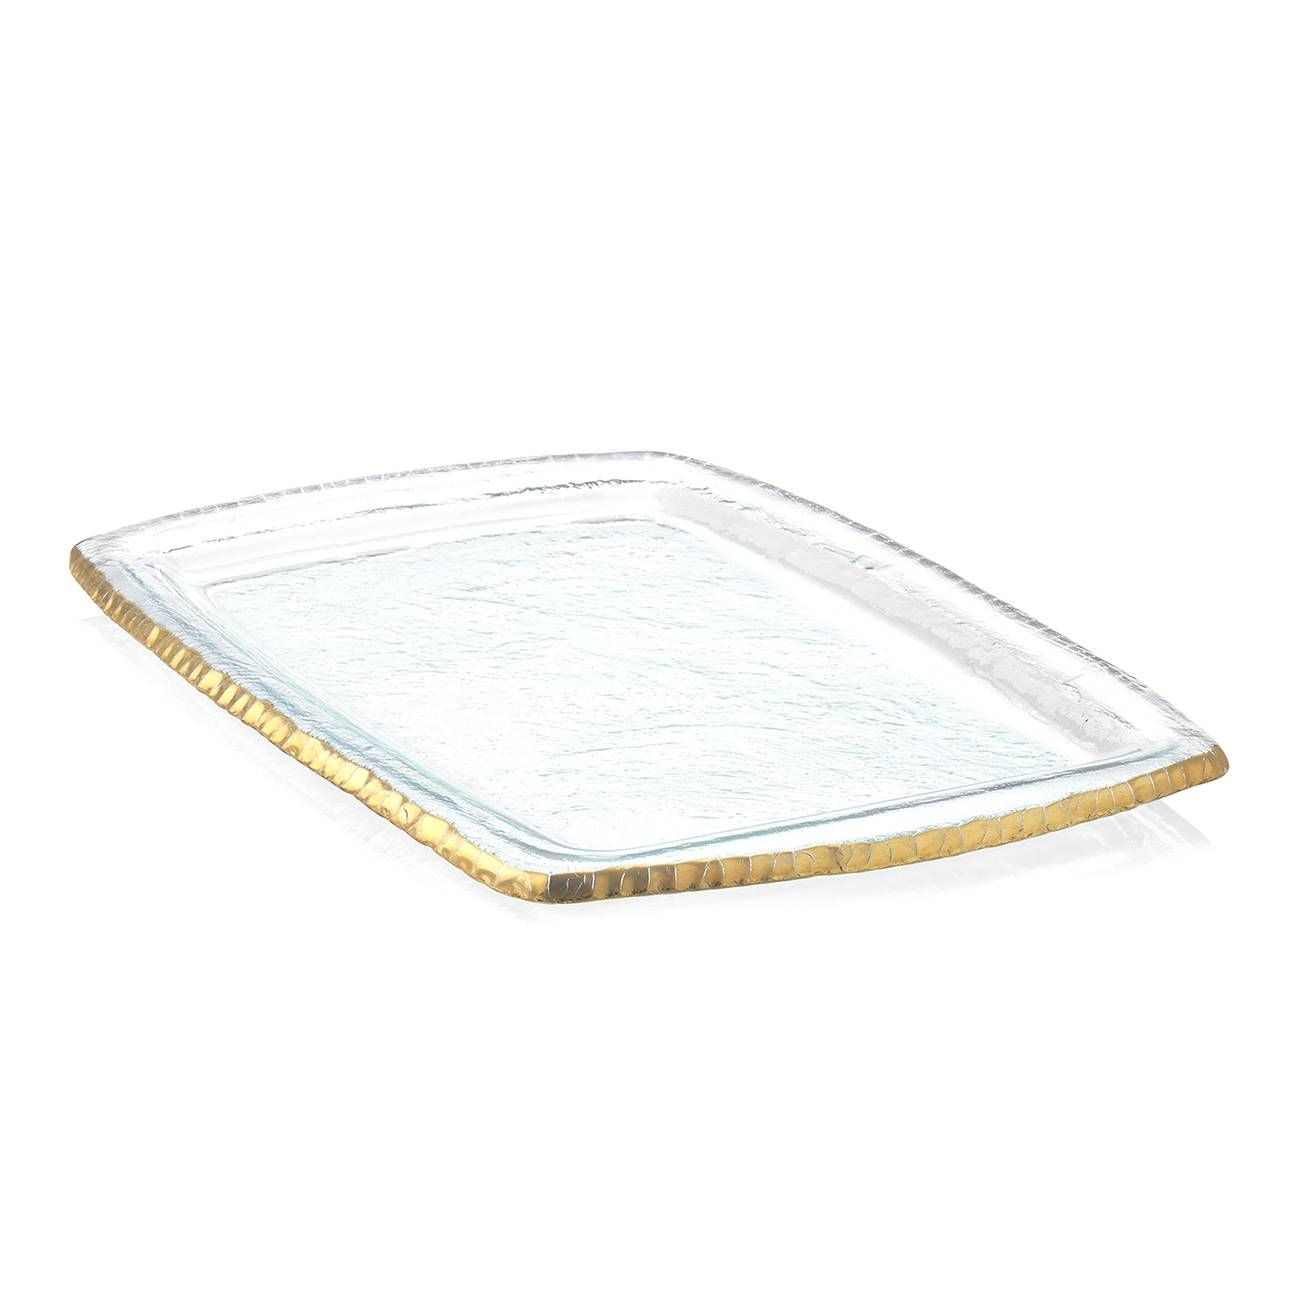 Annieglass Edgey Gold Martini Tray